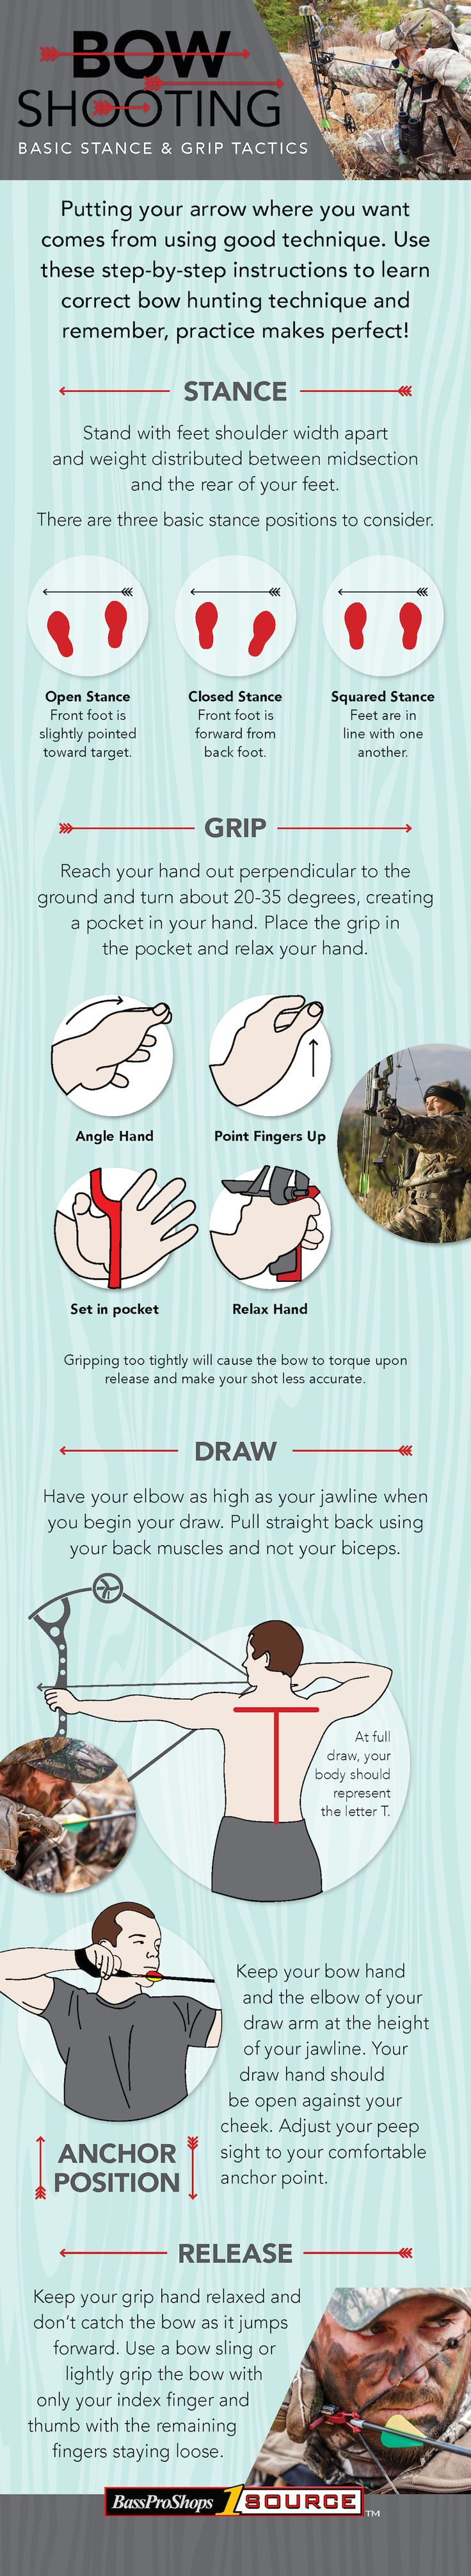 5 Steps to Bow Shooting Basics: Stance & Grip Tactics (Infographic)